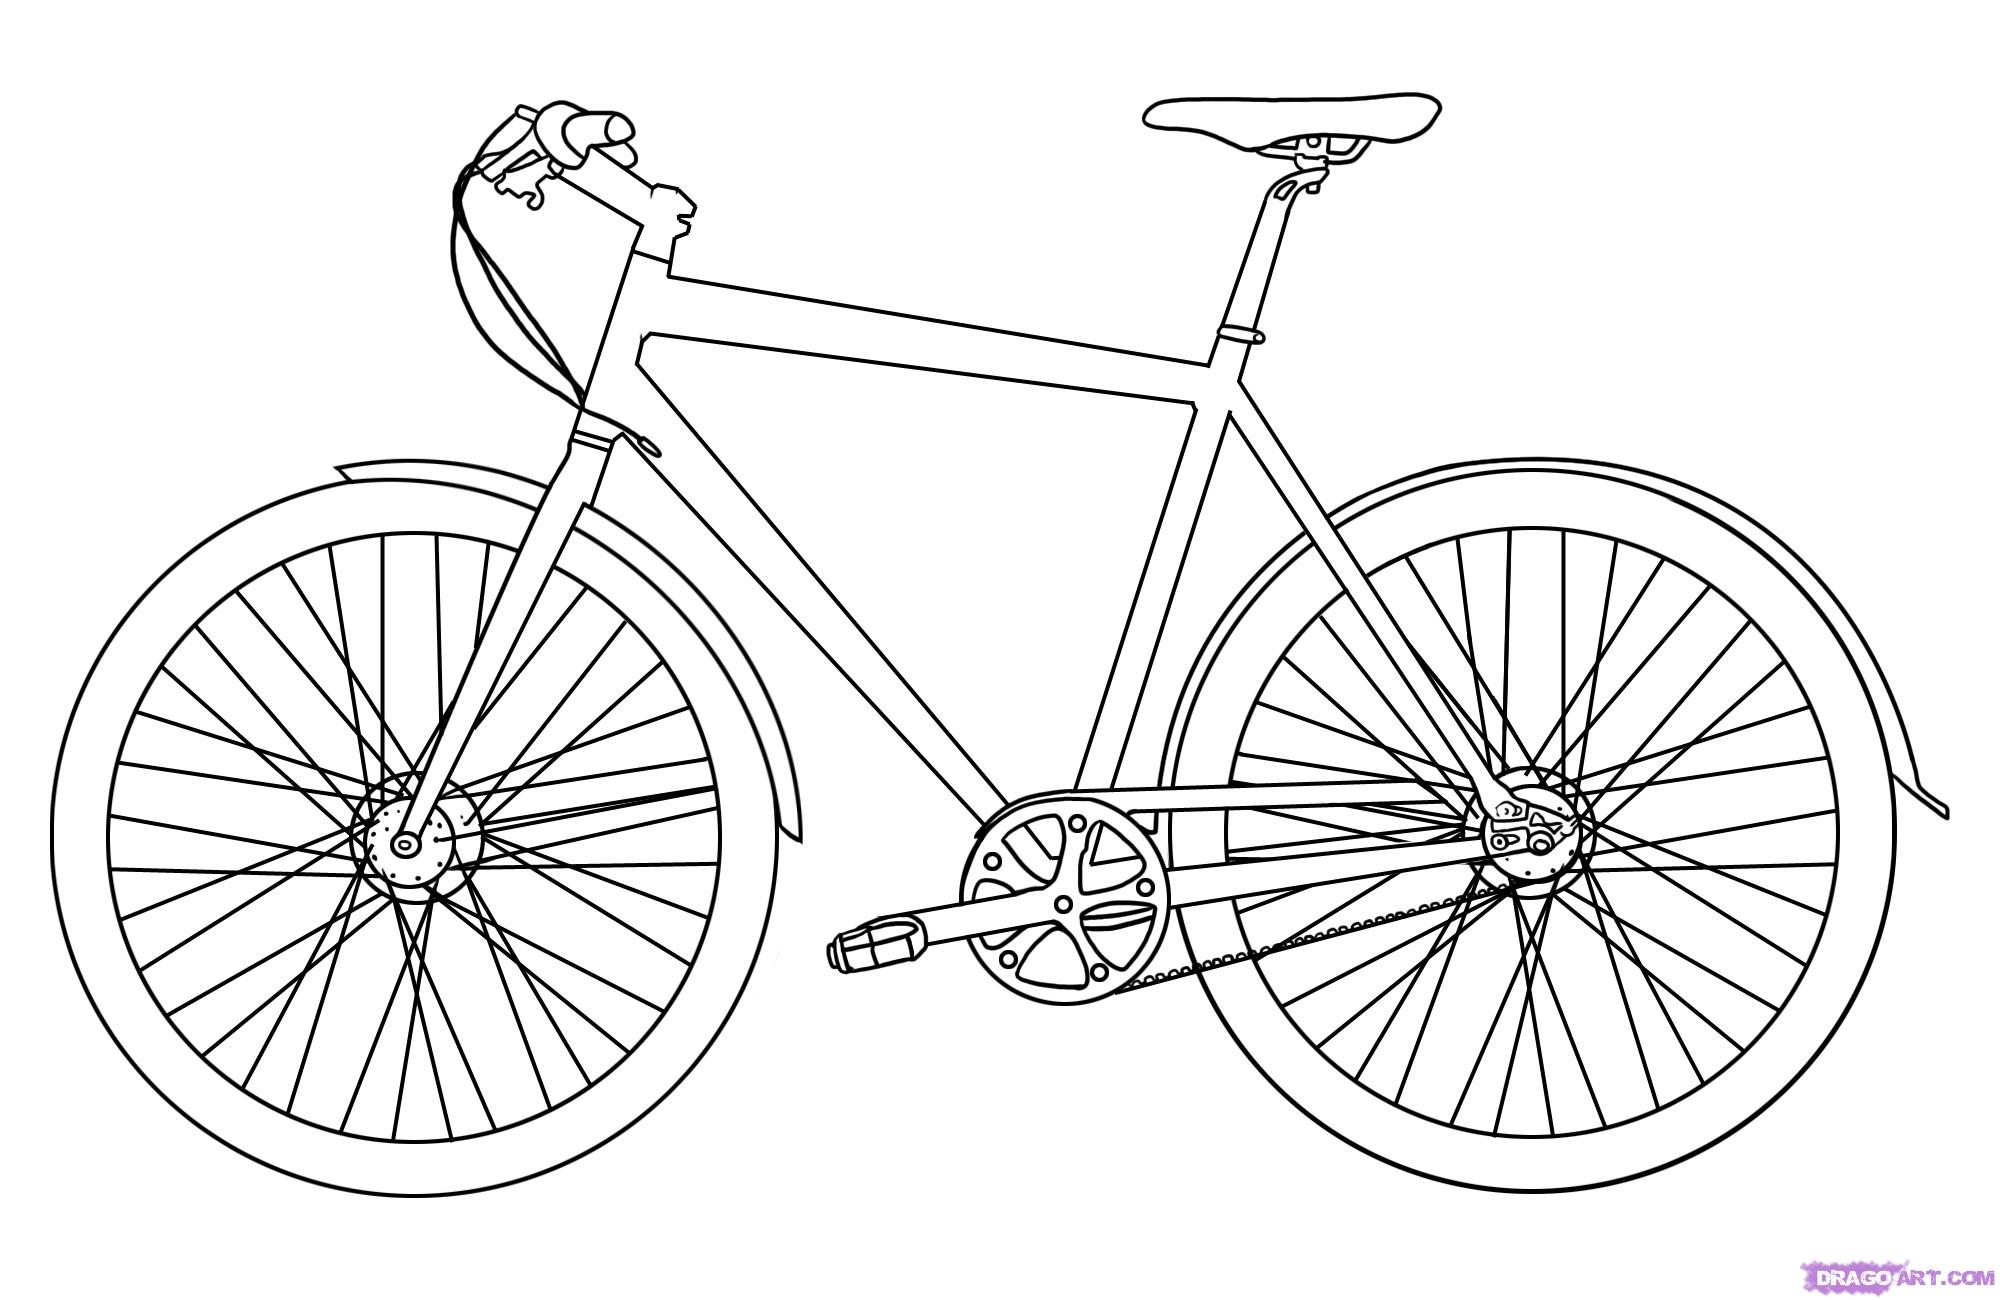 2000x1300 Simple Drawing Of Bike How To Draw A Bicycle, Step By Step, Stuff